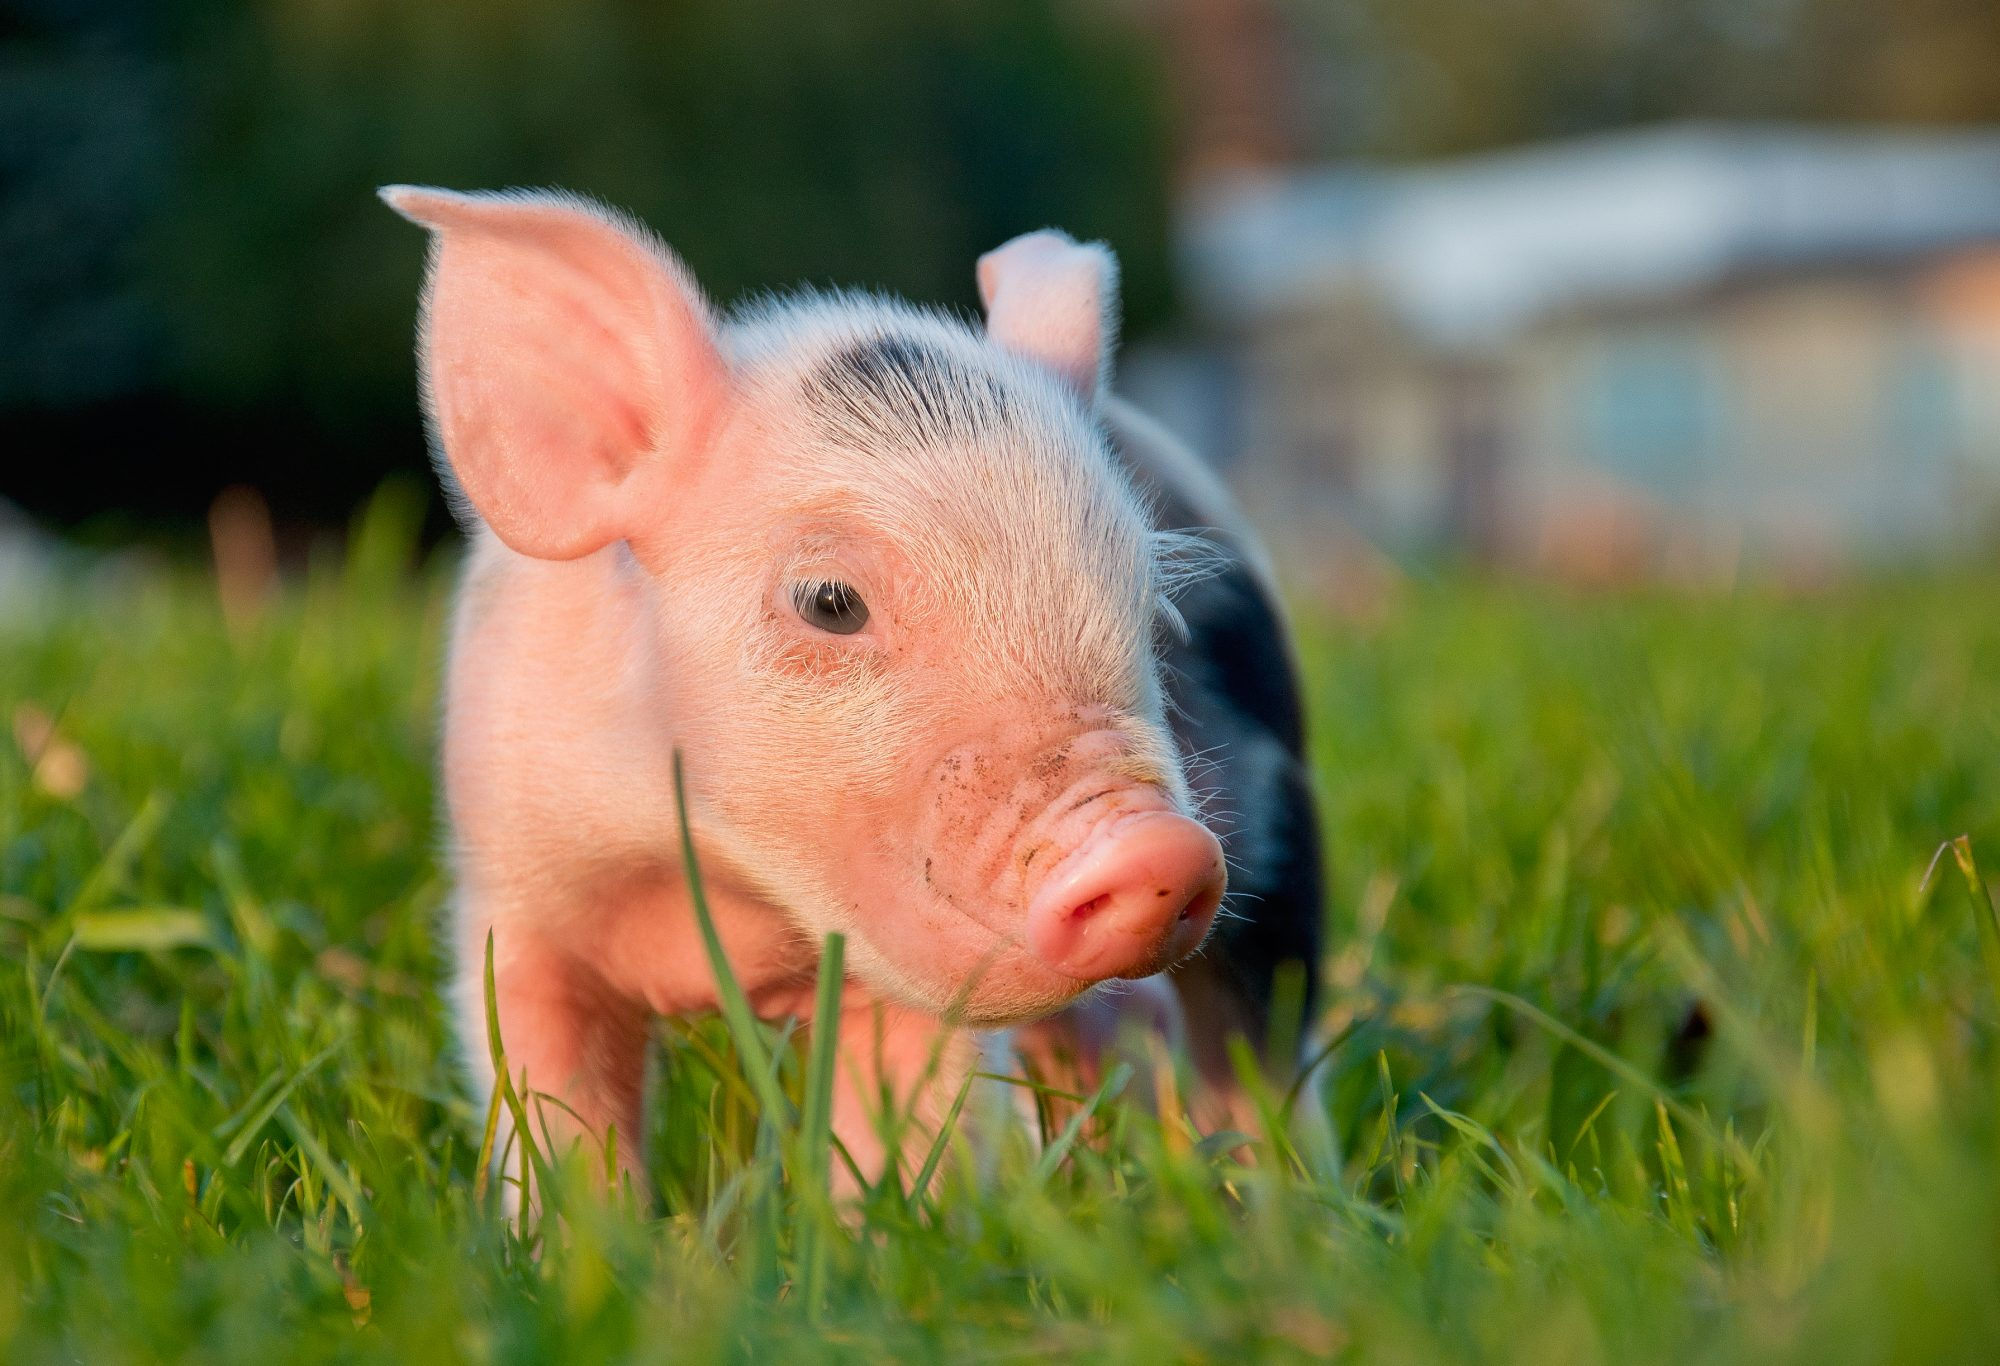 Piglet walking in grass field